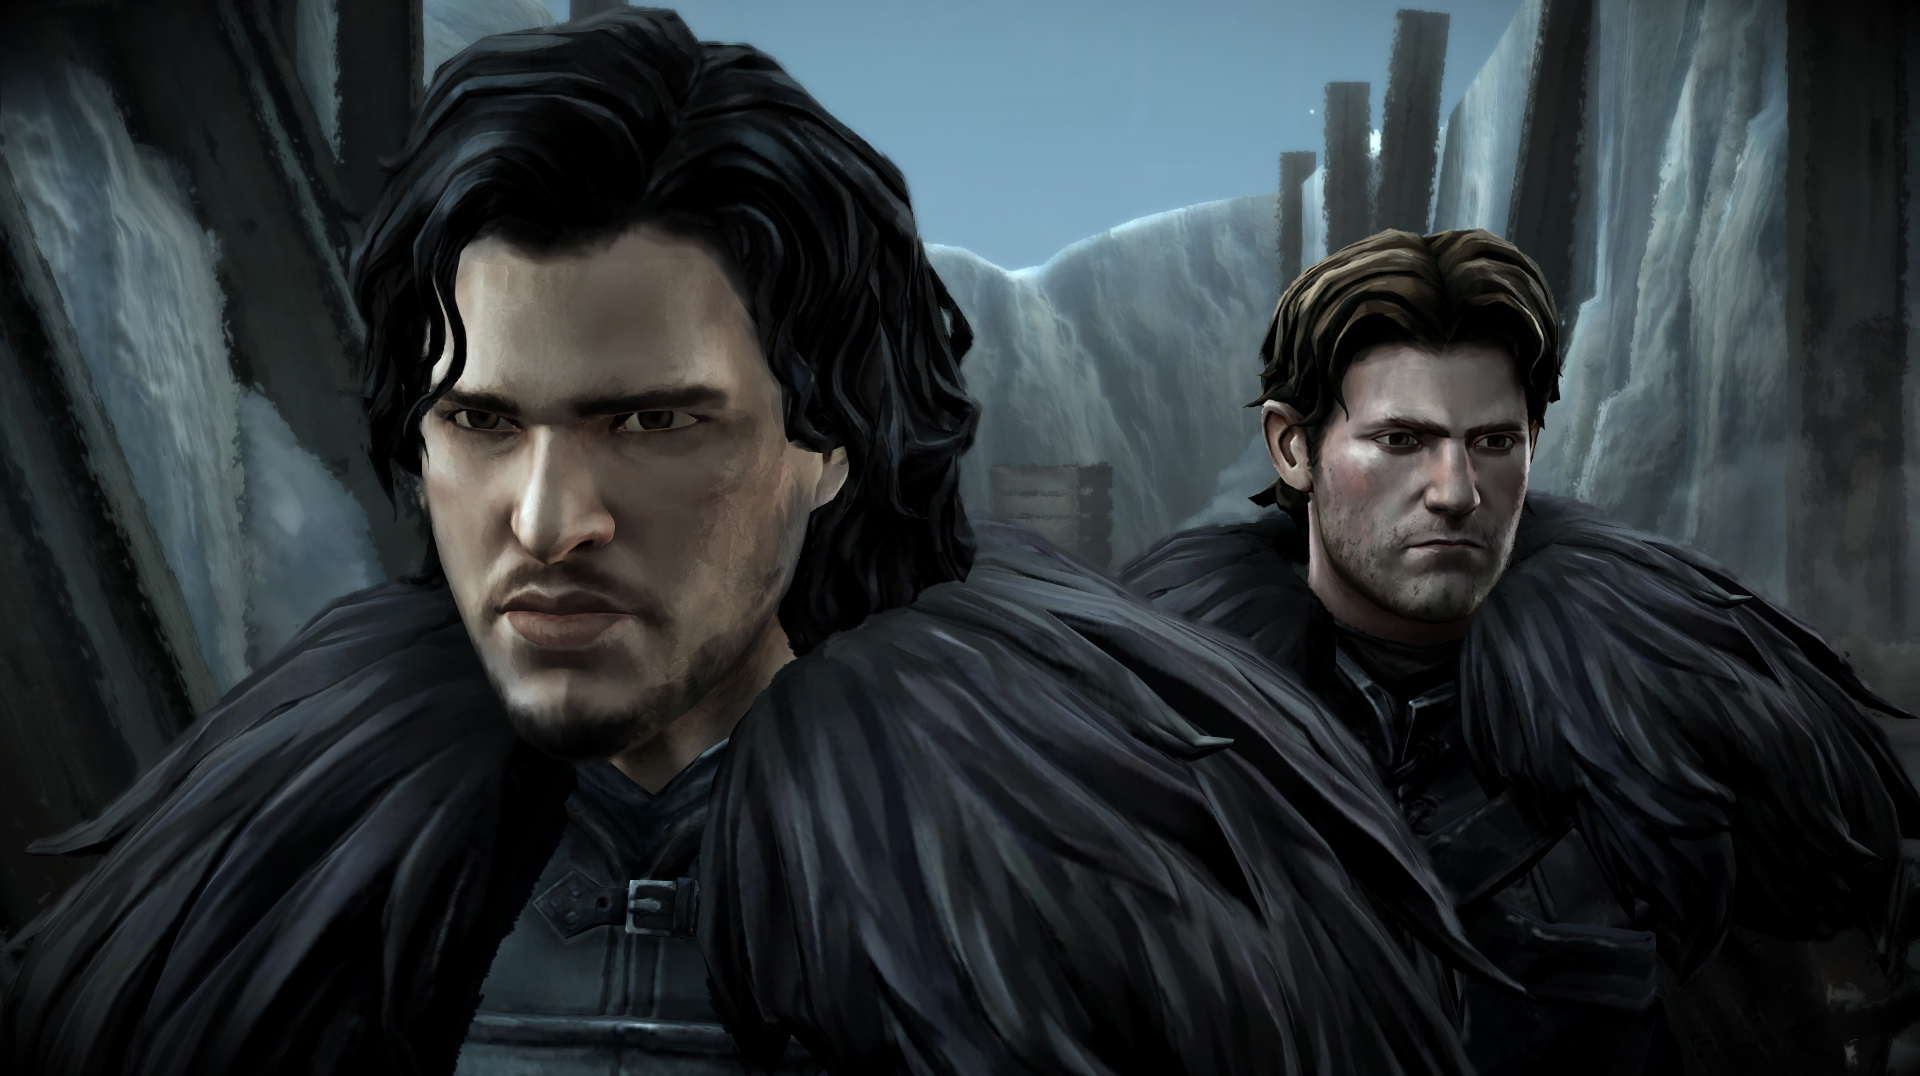 Game of Thrones A Telltale Series